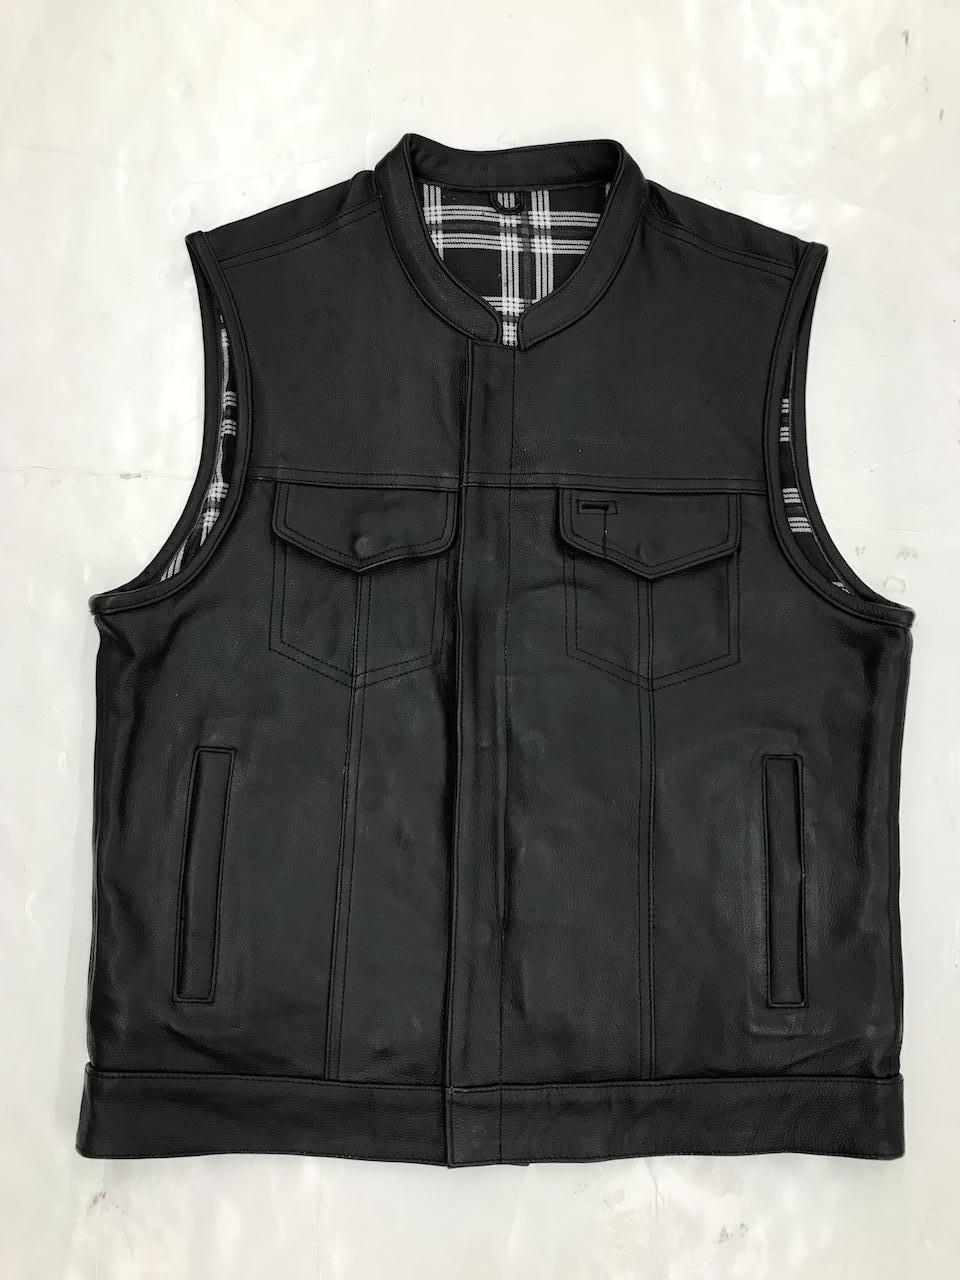 UNIK Men's Vest with Black / White Flannel Liner - Ghost Rider Leather